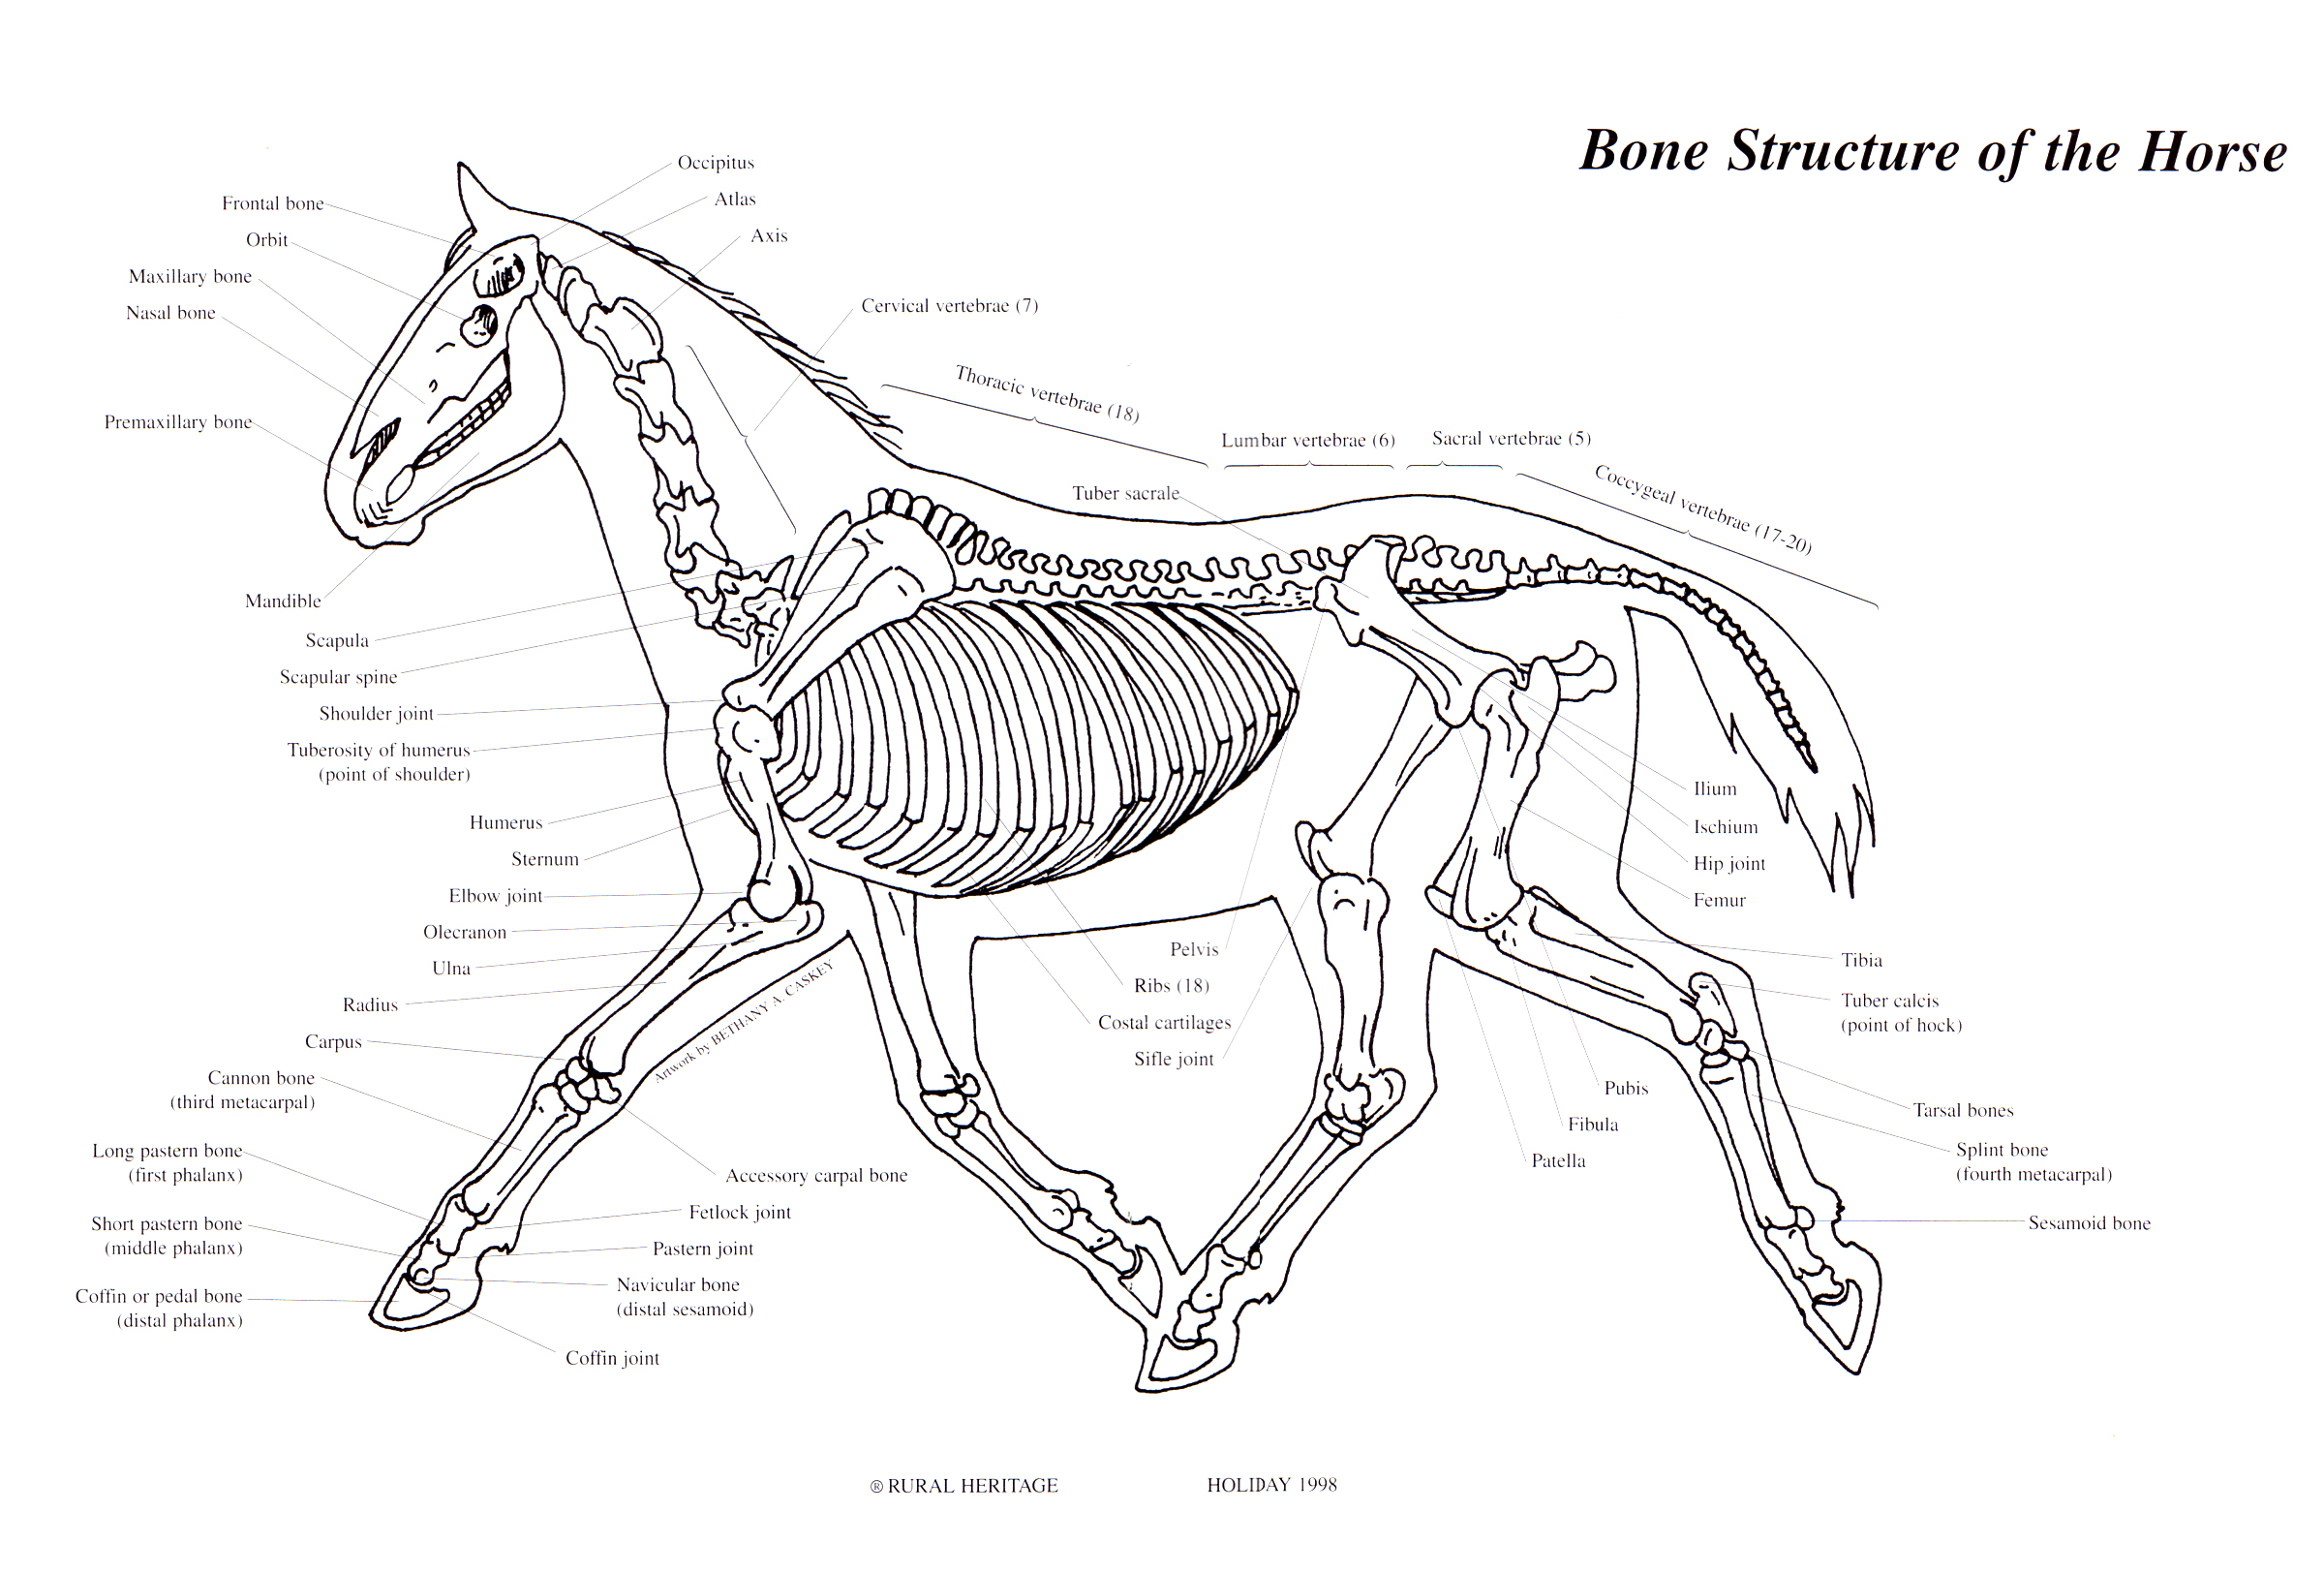 Rural Heritage Horse Bone Structure Illustration